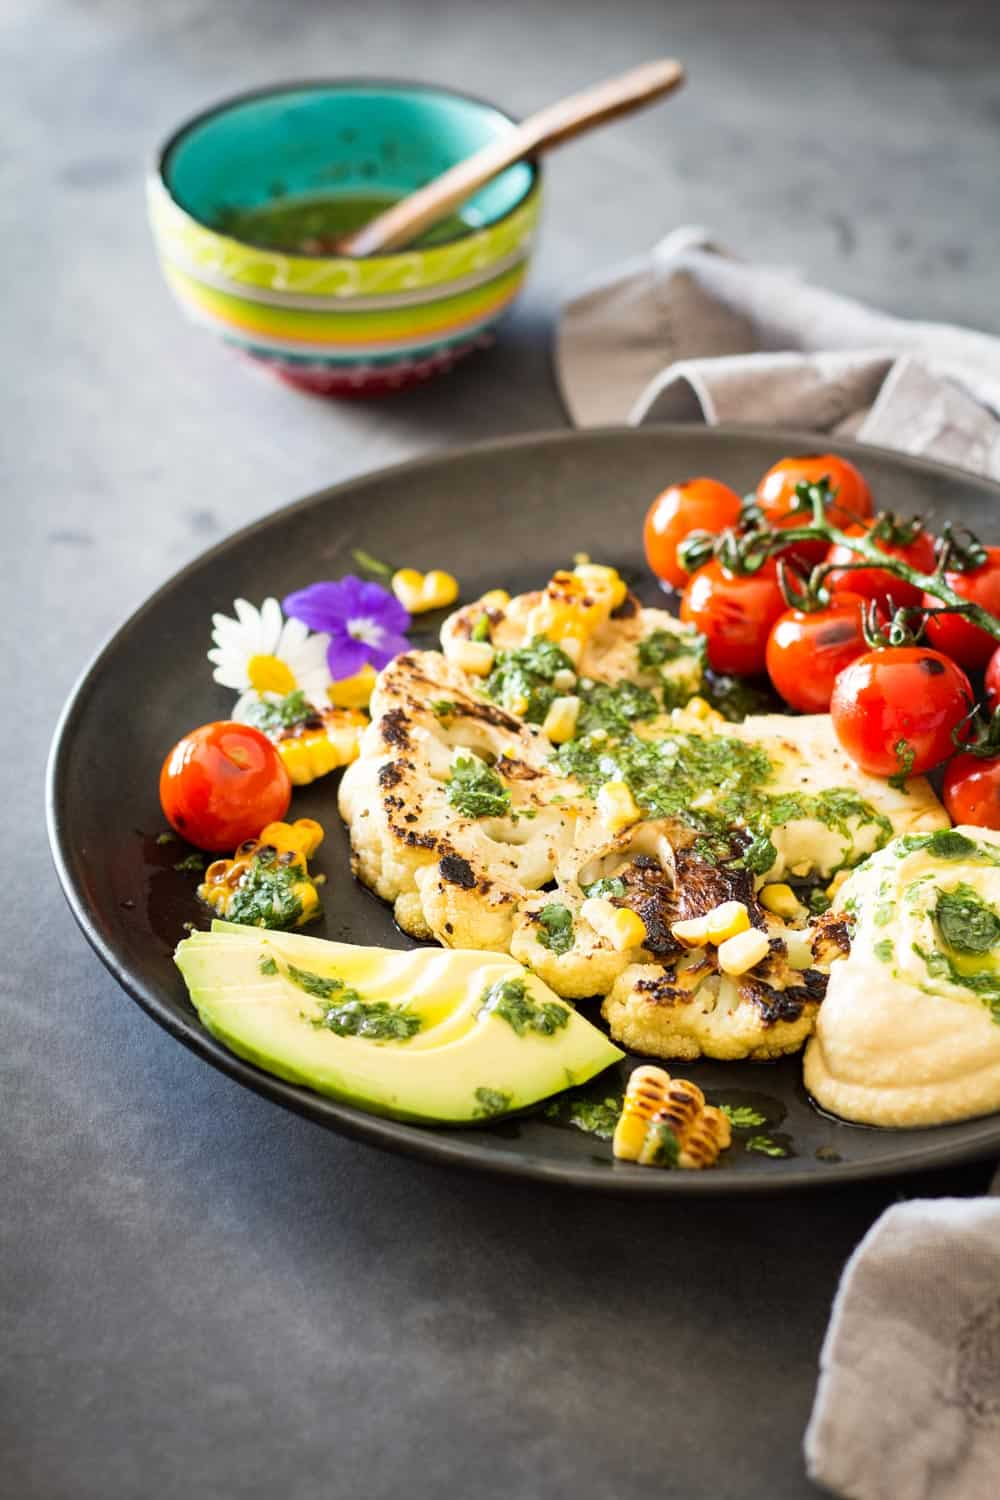 Grilled Cauliflower Steak with chimichurri sauce, cherry tomatoes and avocado on a plate, and a bowl of chimichurri sauce in the back.